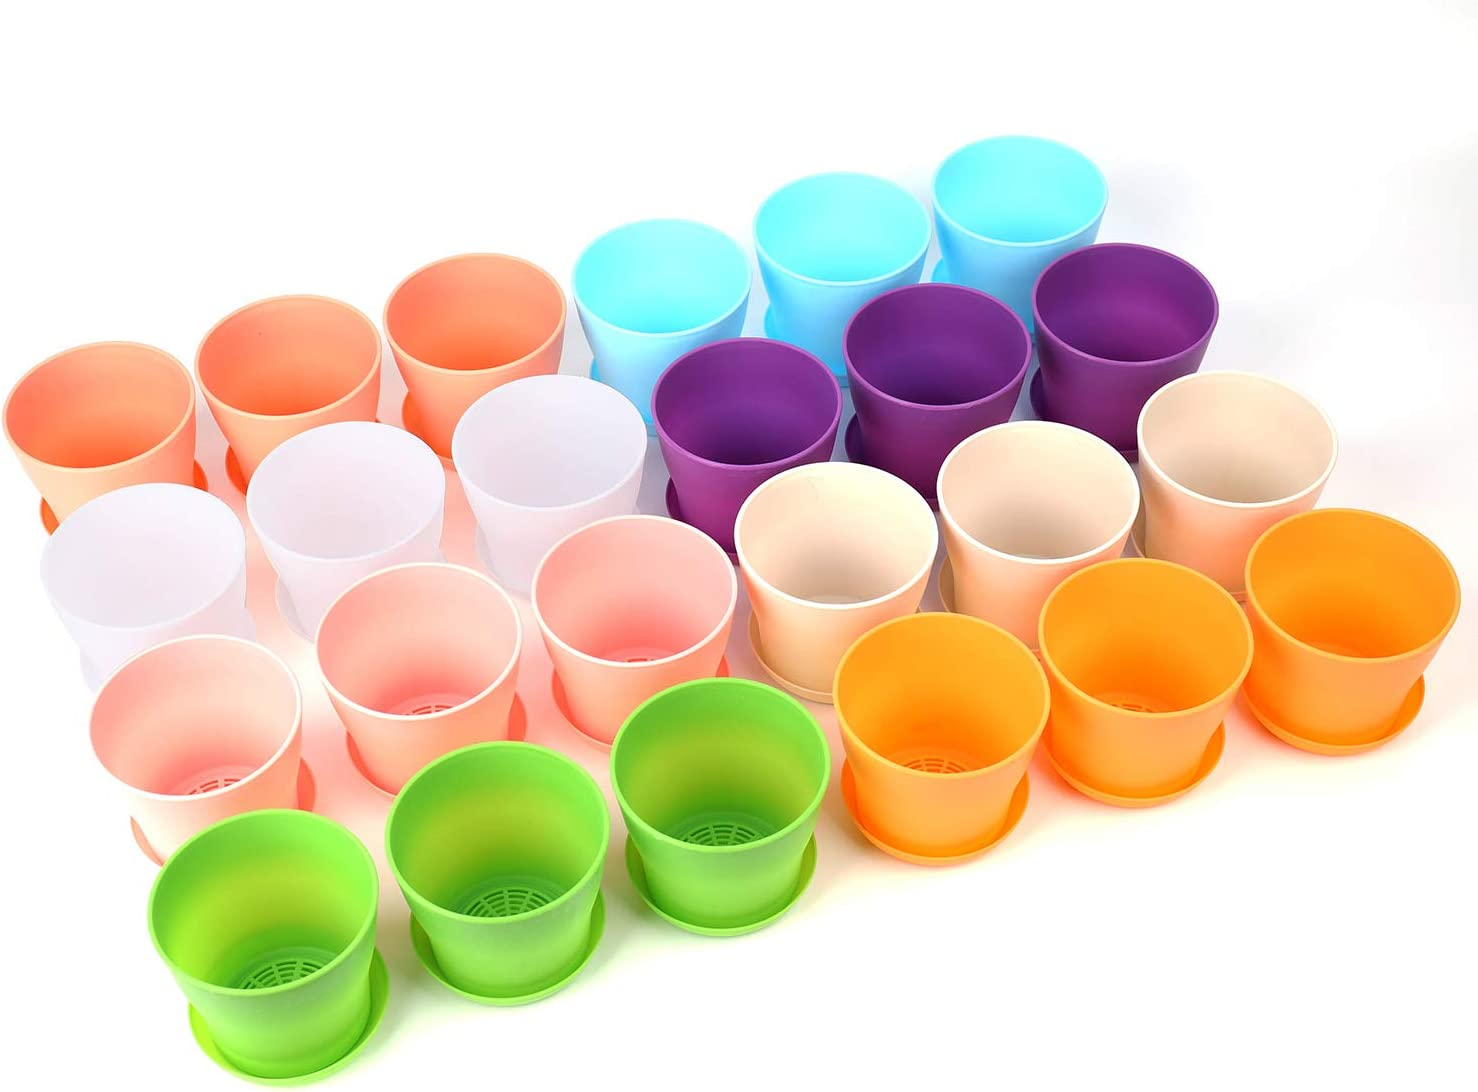 Tosnail 24 Pack Small Plastic Flower Pot Planting Pots for Plants - Assorted 8 Colors